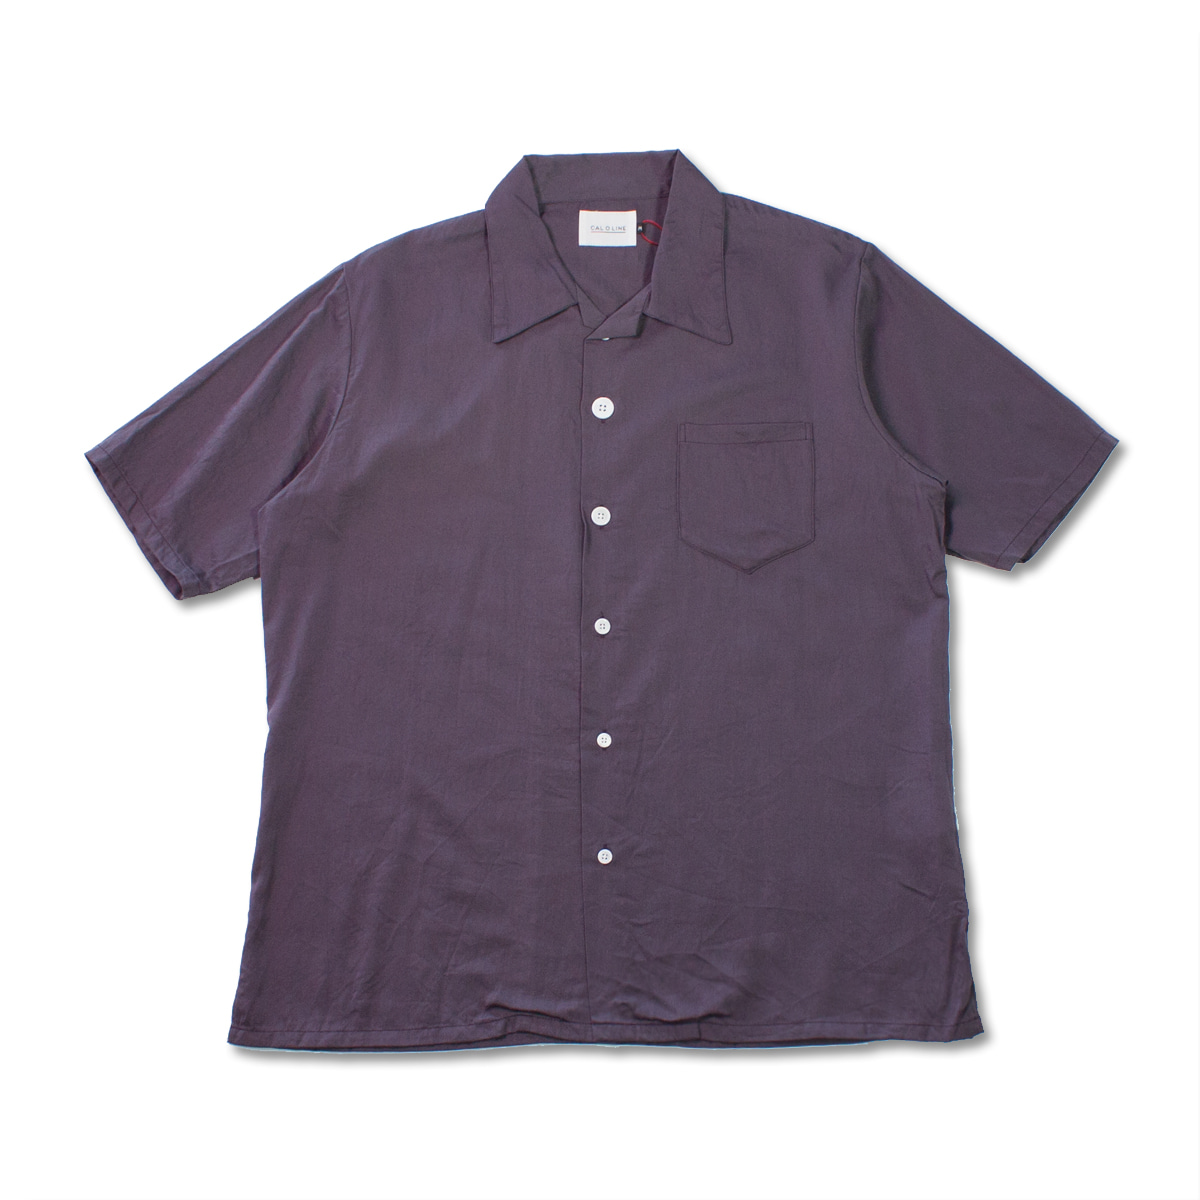 [CAL O LINE] OPEN COLLAR S/S SHIRT 'PURPLE'